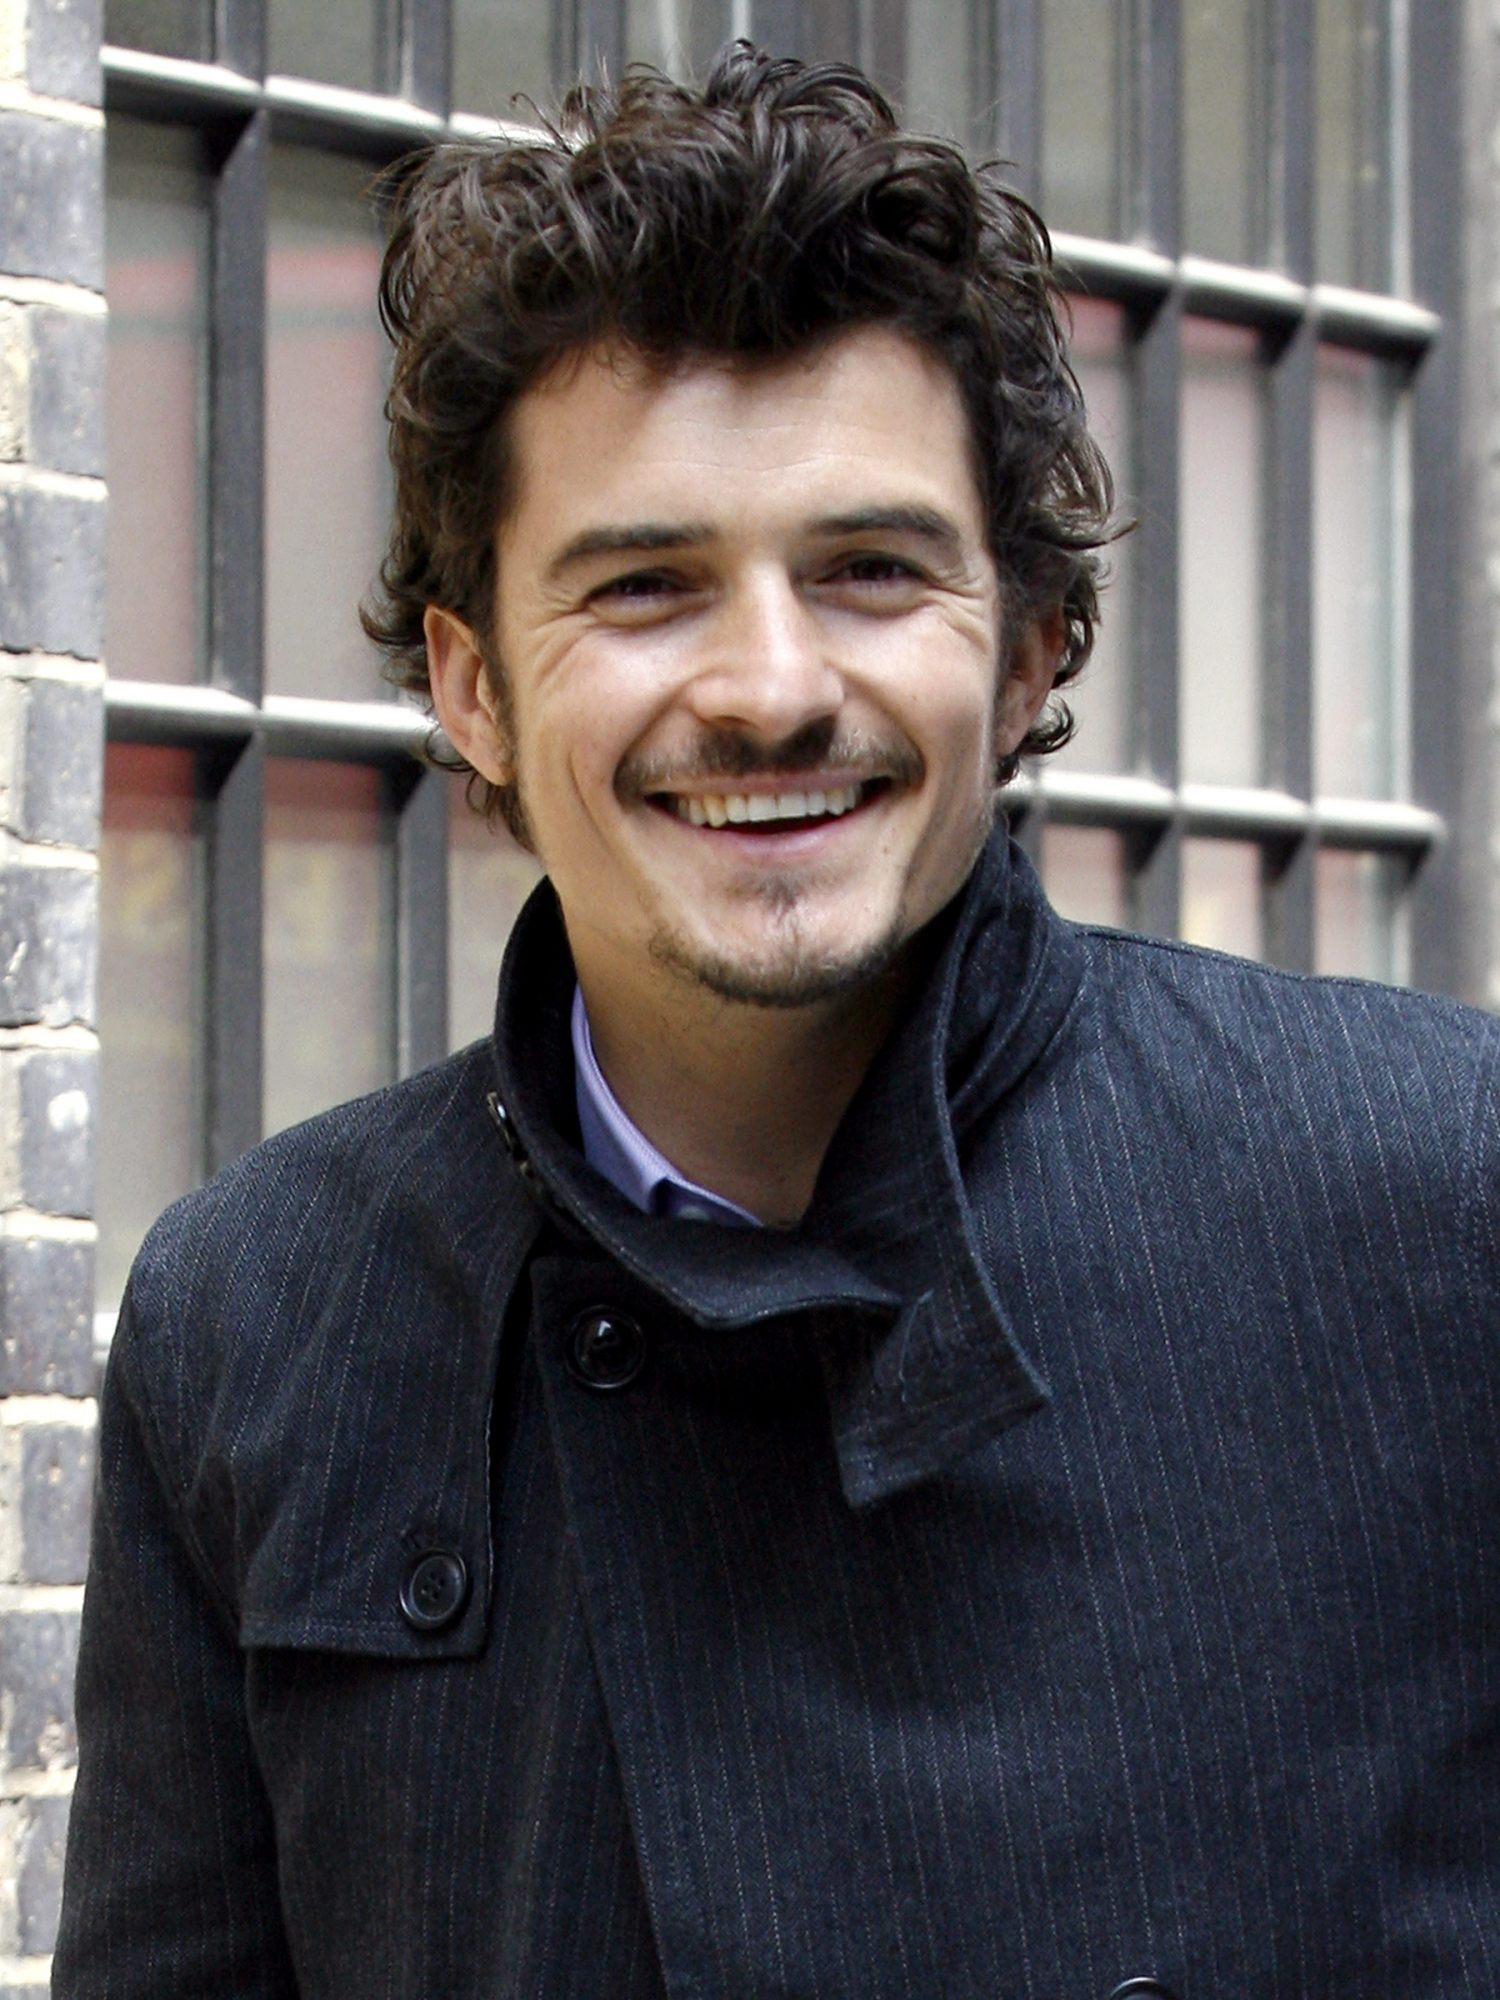 Orlando Bloom Sighted In London - May 25, 2010